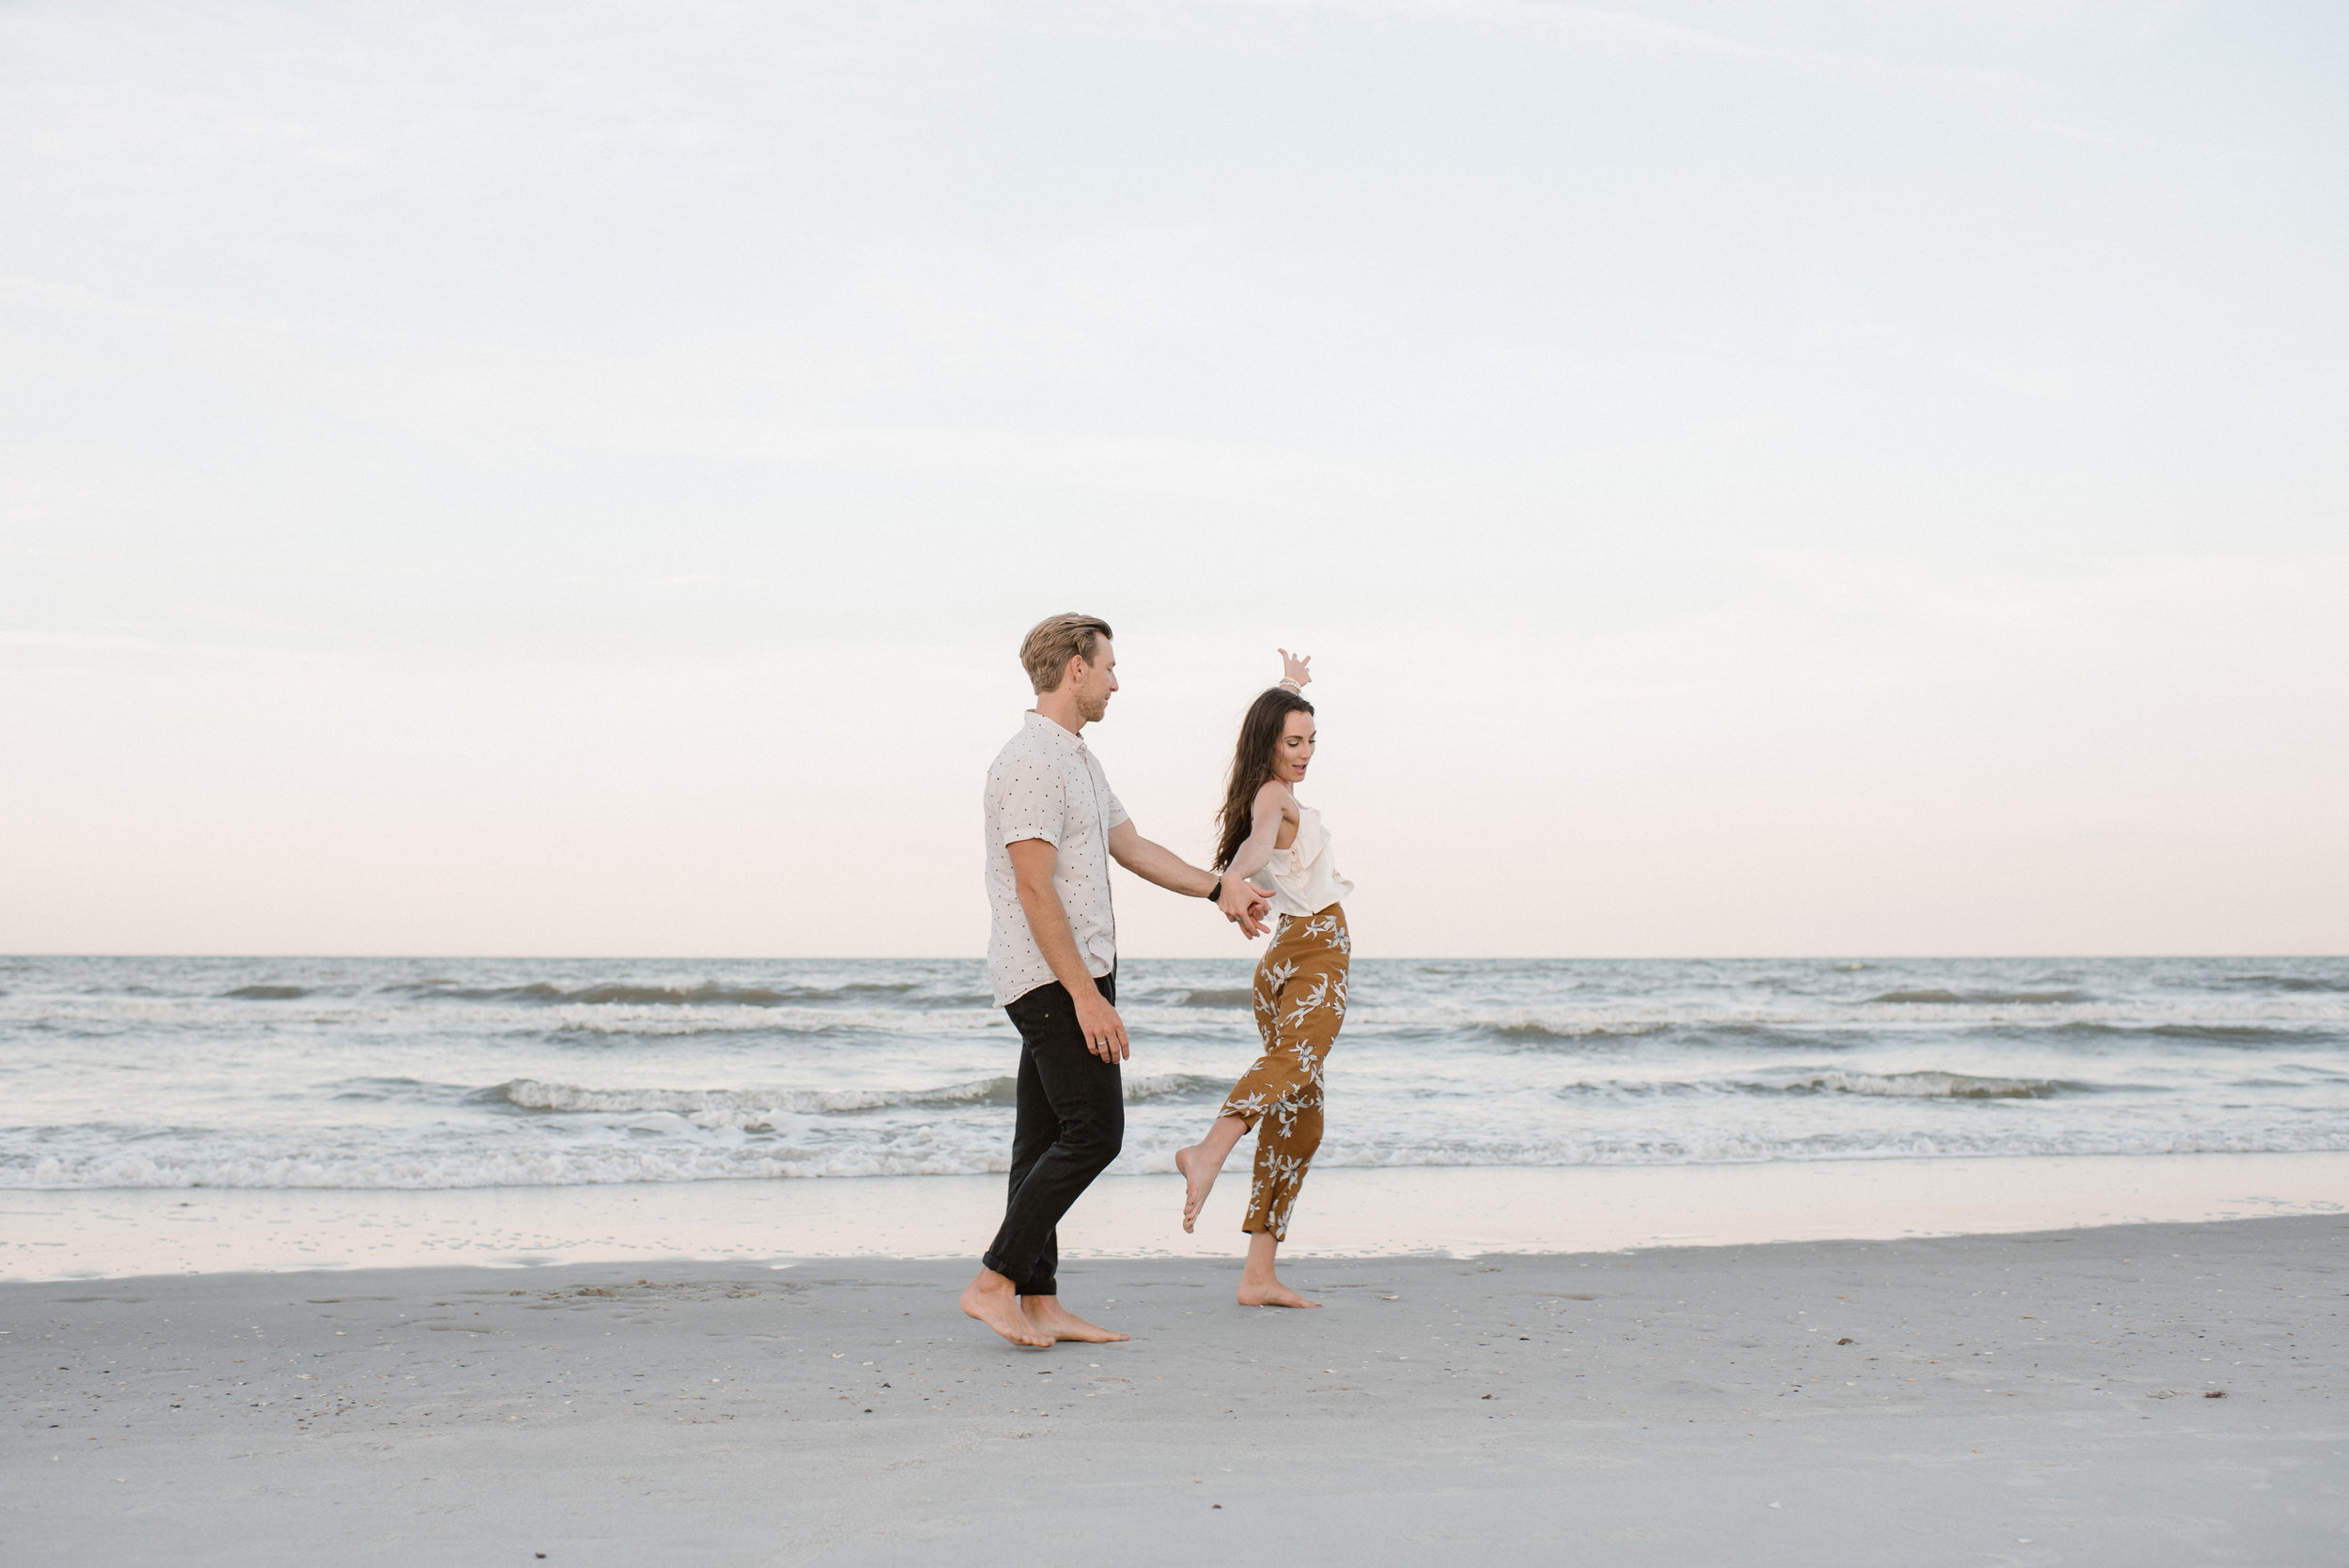 atlantic-beach-engagement-photos-heather-and-cody-126.jpg